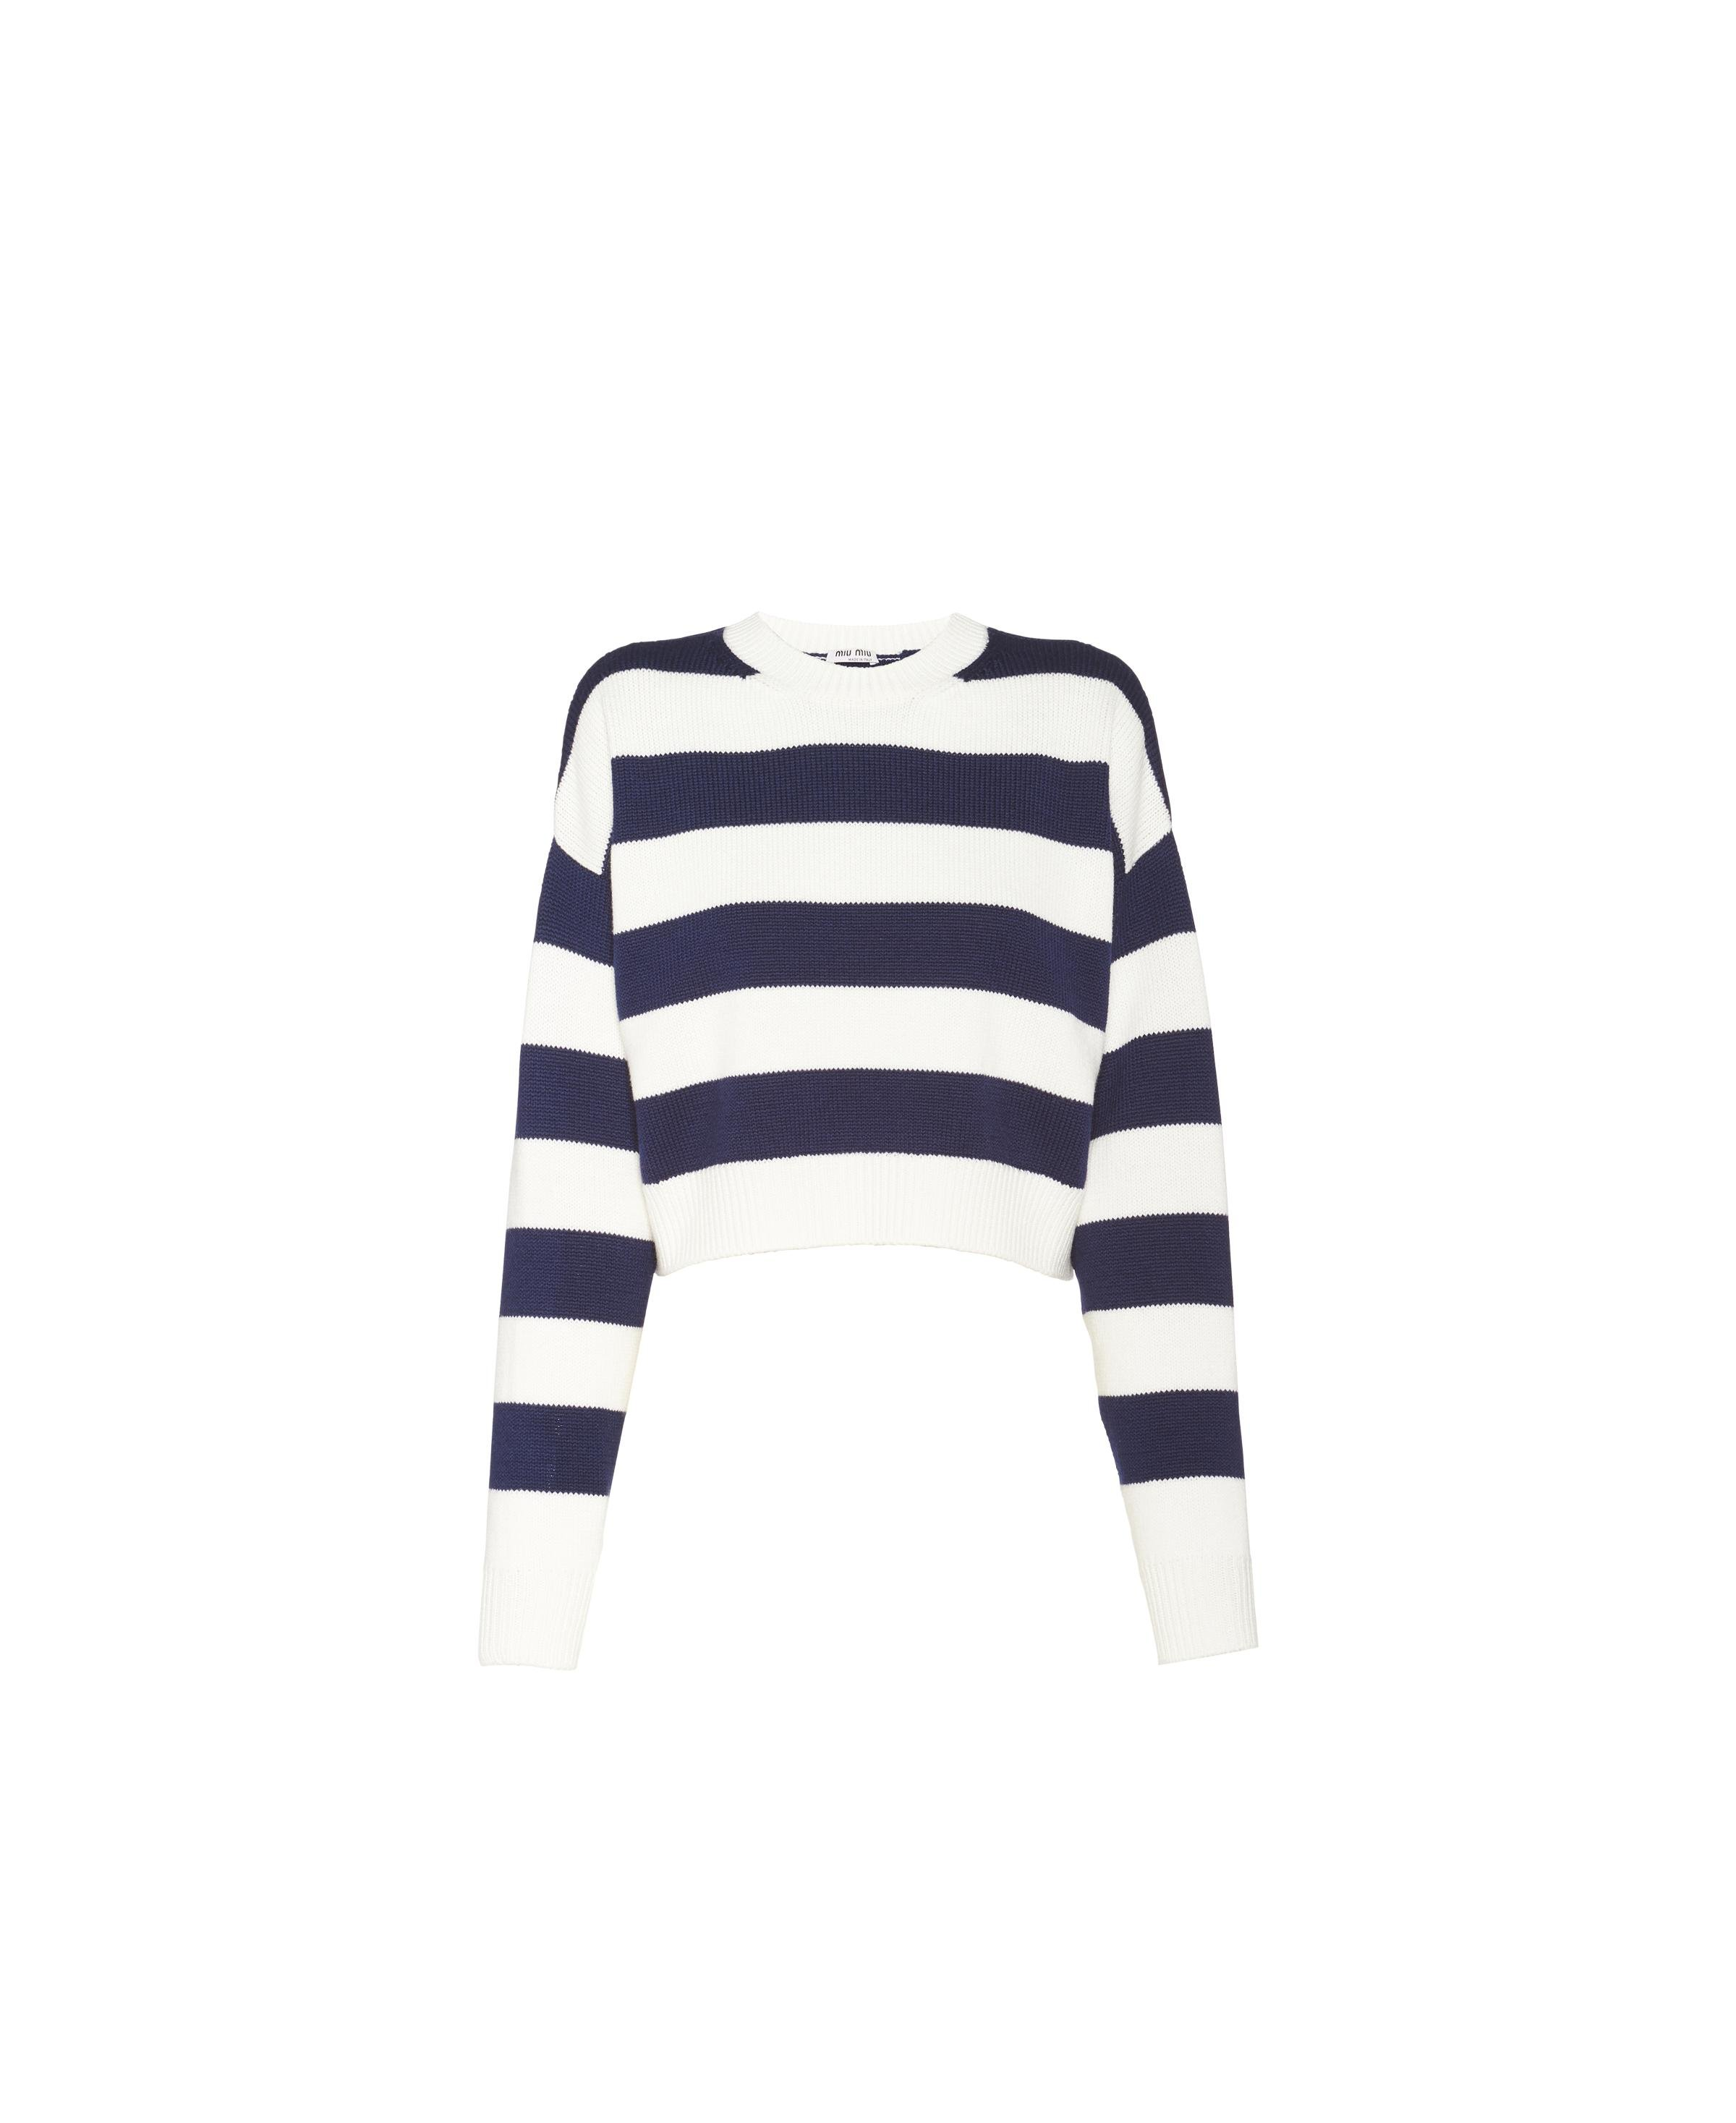 Embroidered Wool Sweater Women Ivory/navy Blue